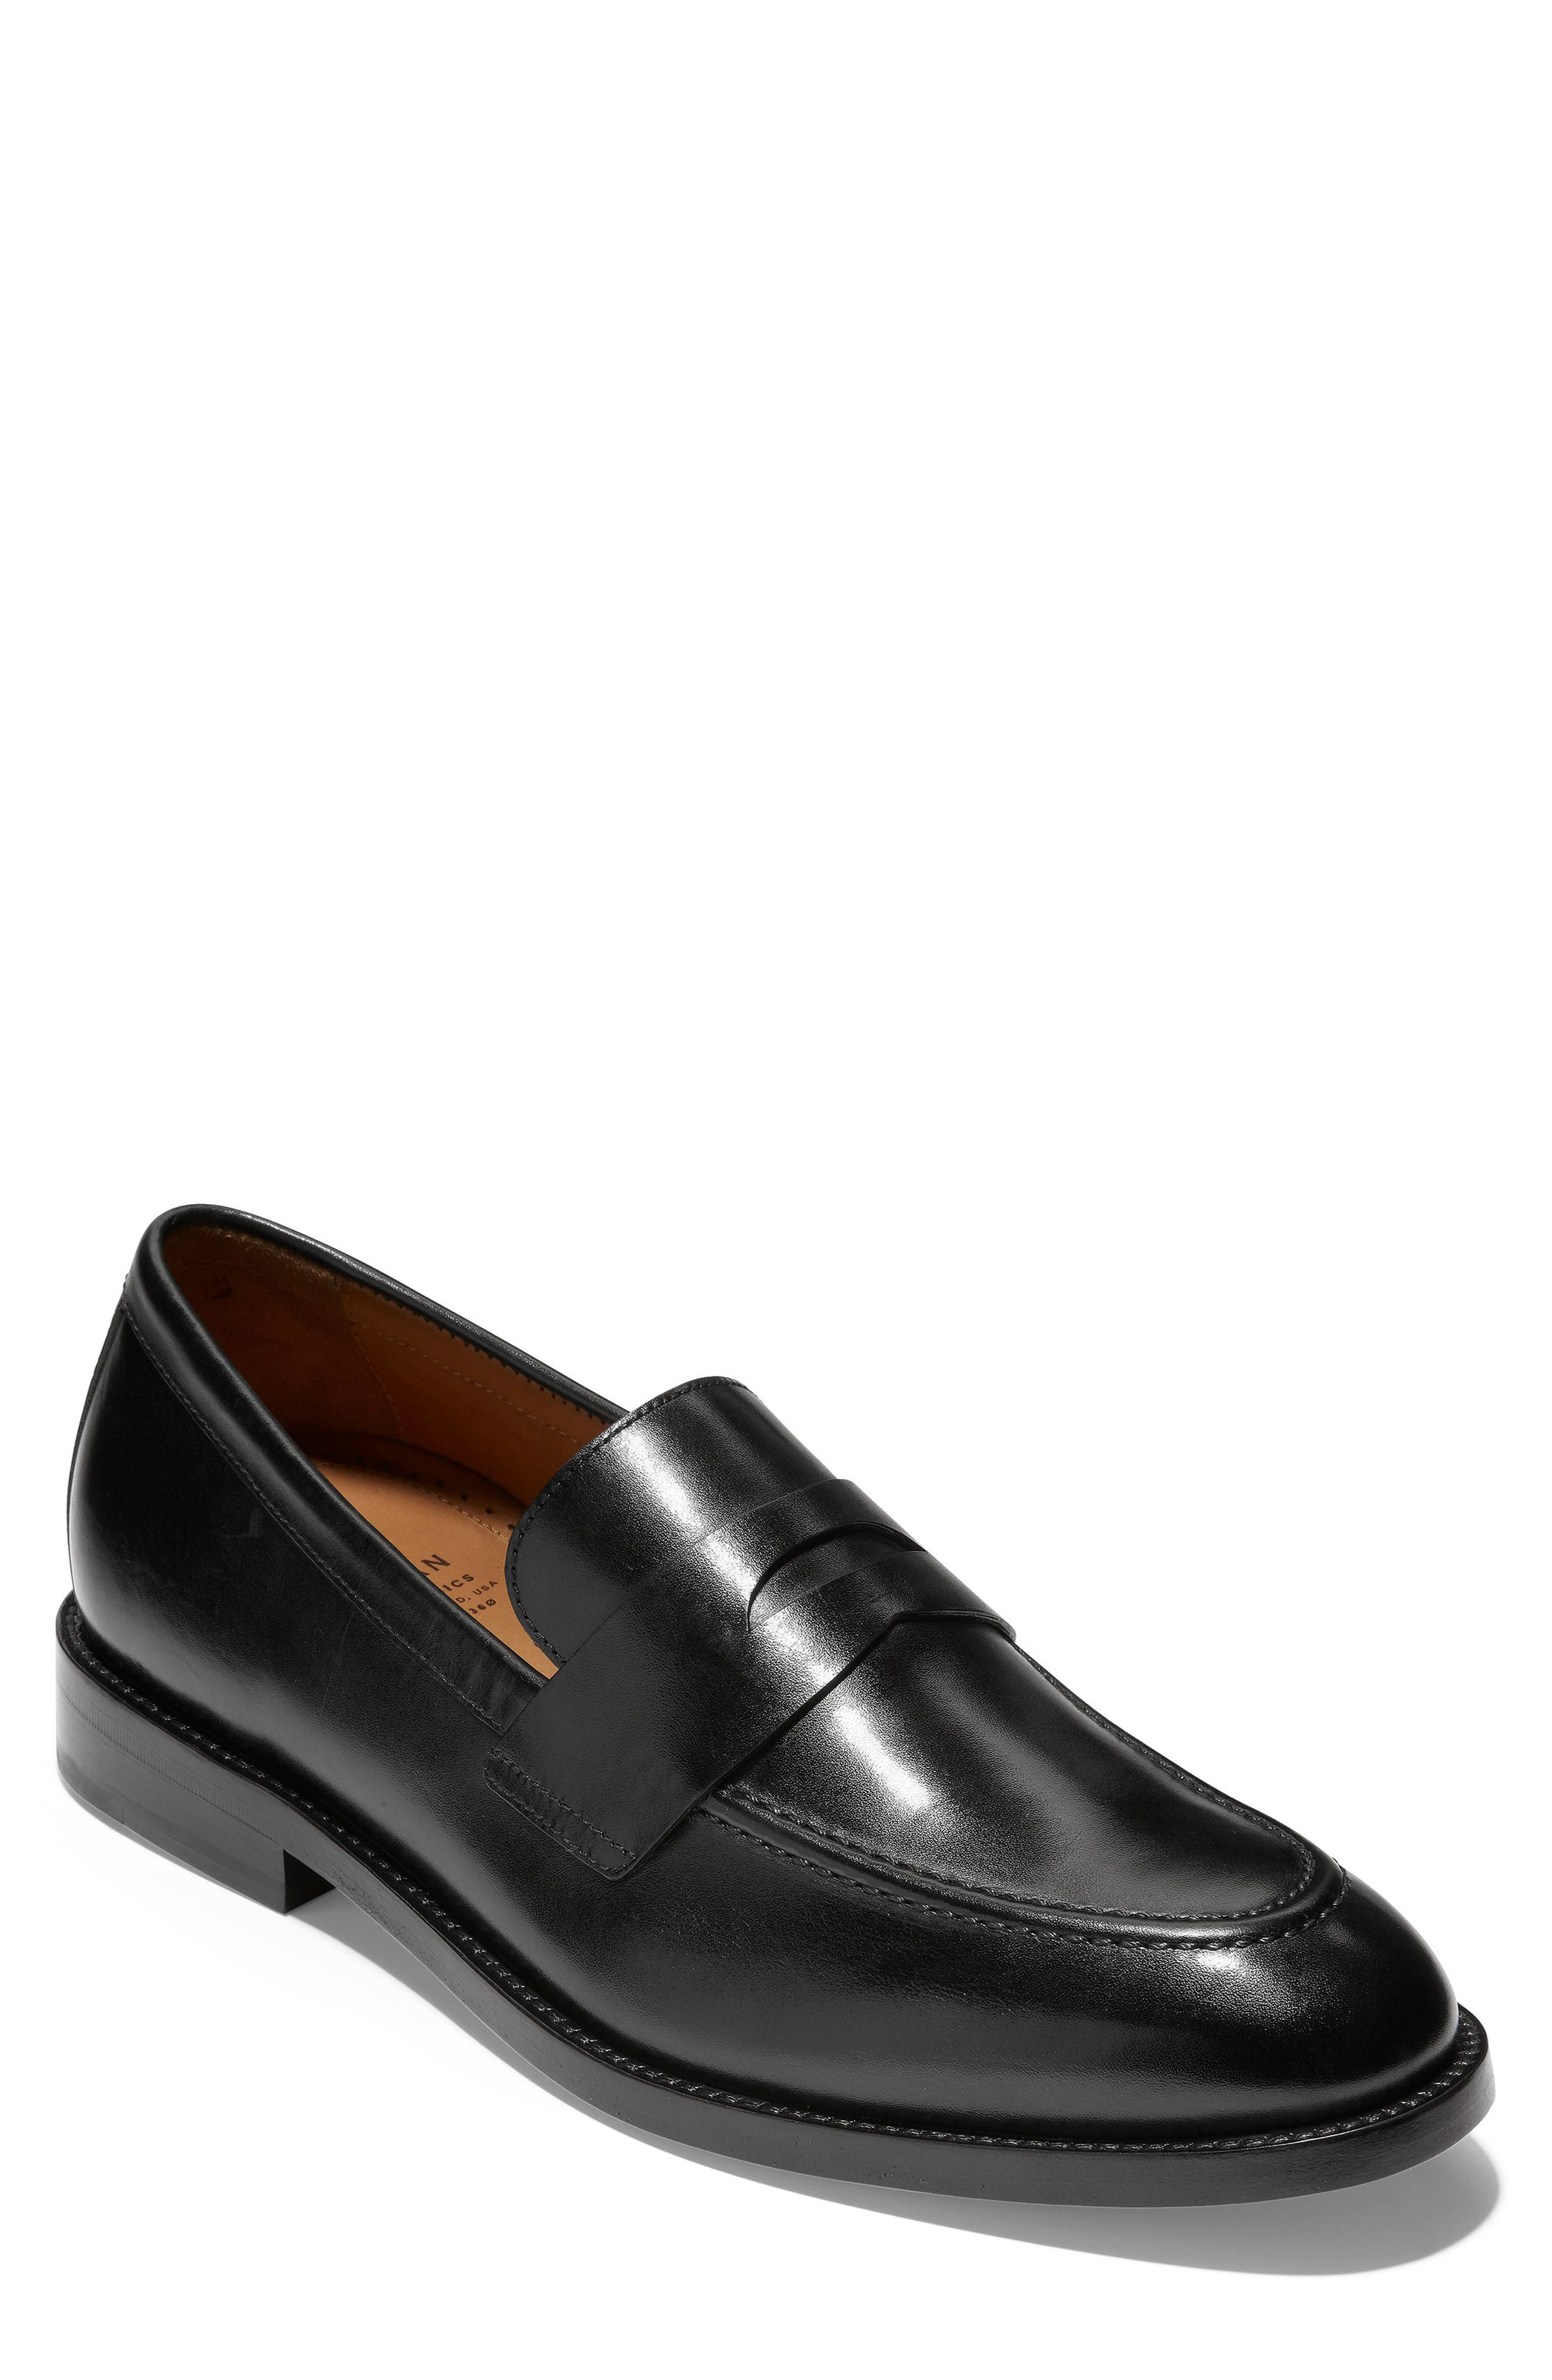 American Classics Kneeland Penny Loafer,                             Main thumbnail 1, color,                             BLACK LEATHER